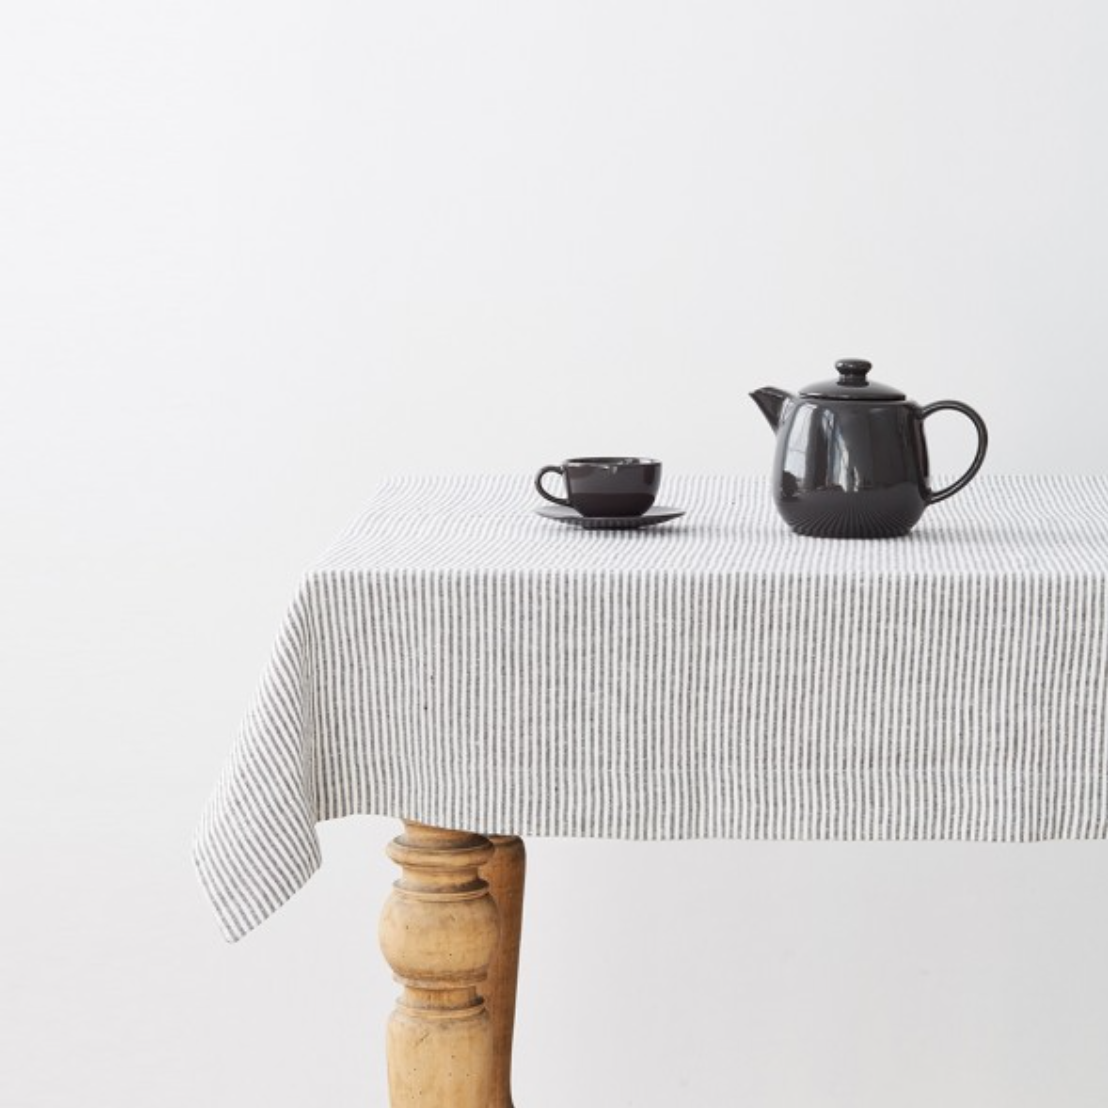 WASHED LINEN TABLECLOTH - THIN BLACK STRIPES (140x200cm)